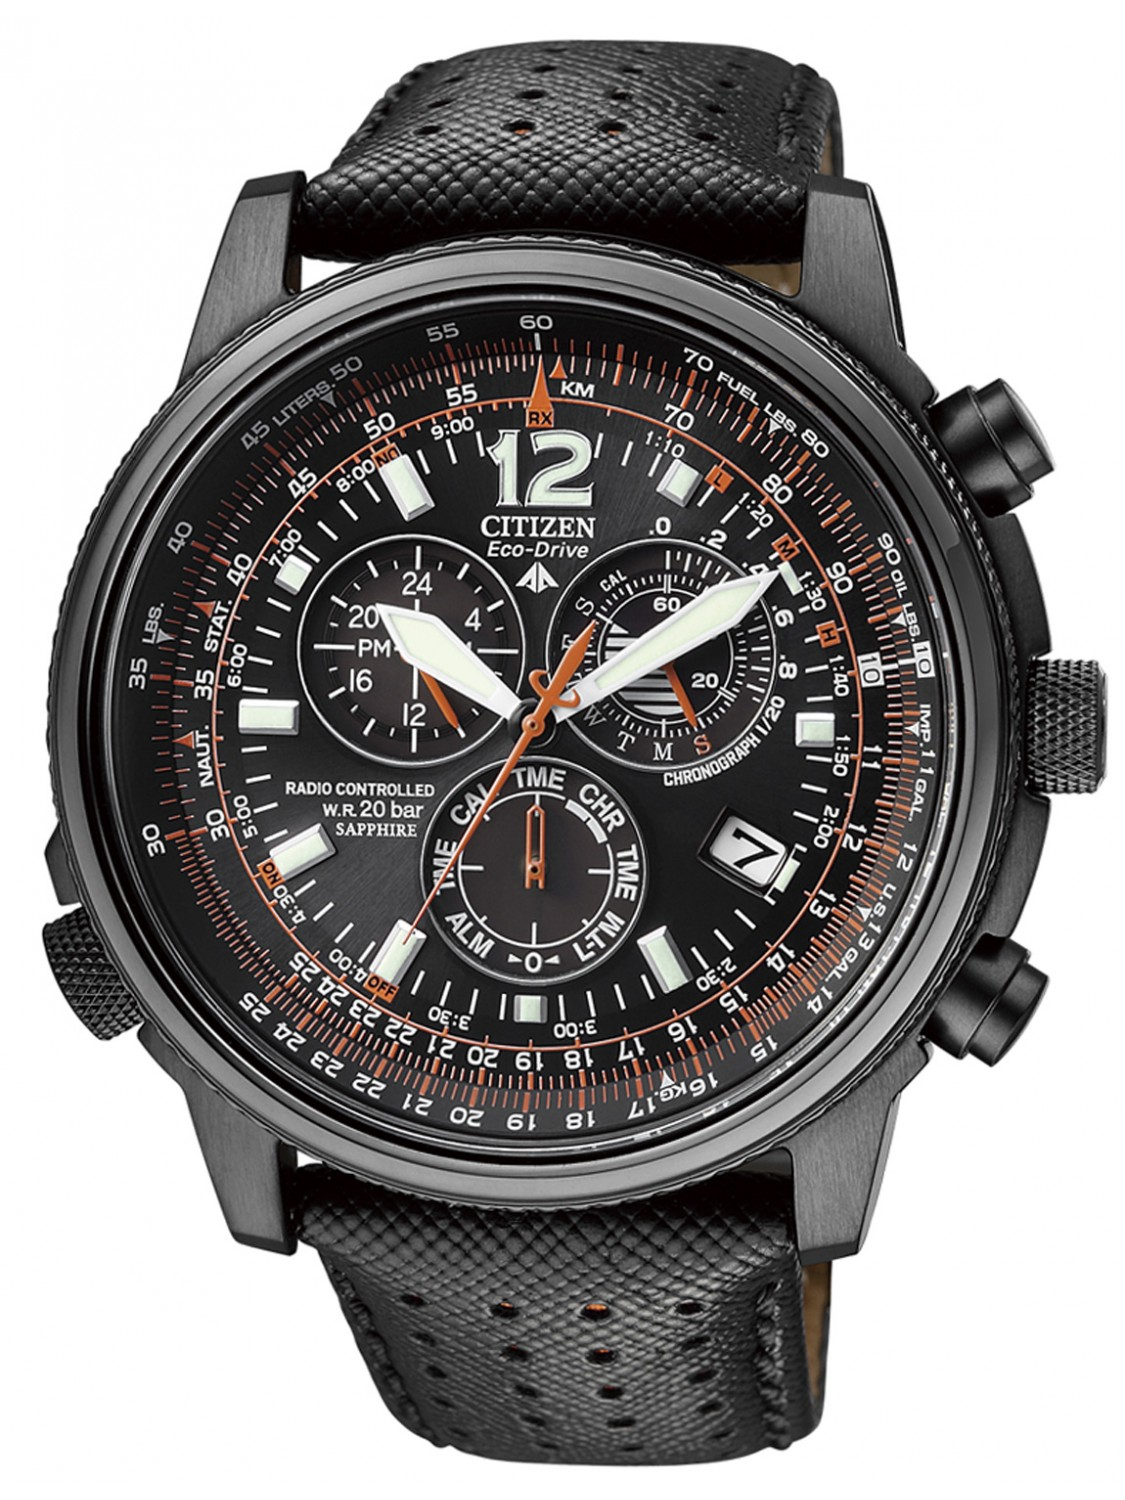 Citizens Of Beauty: 2015 Citizen Eco Drive Watches